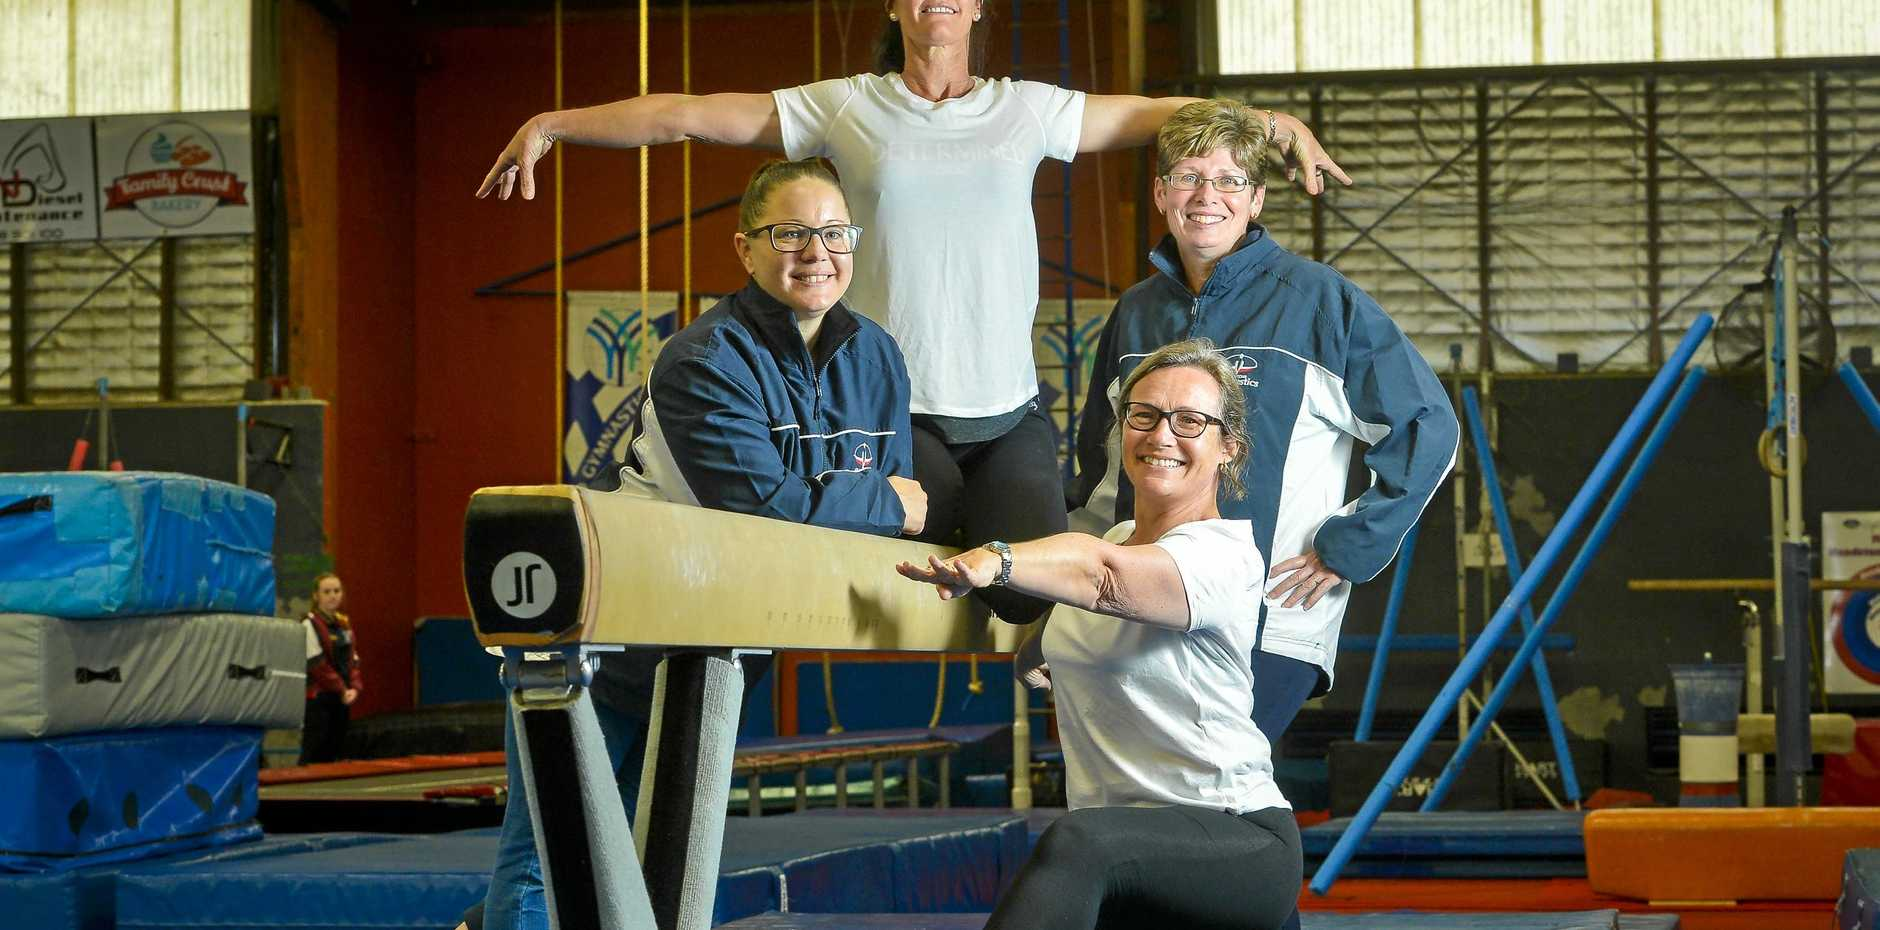 GYMNASTIC FLAIR: Kerry Morgan, Suzanne Neucom, Kate Townsend and Karen Parker will be competing at the 2018 Masters Gymnastics Competition in Gladstone on Sunday.